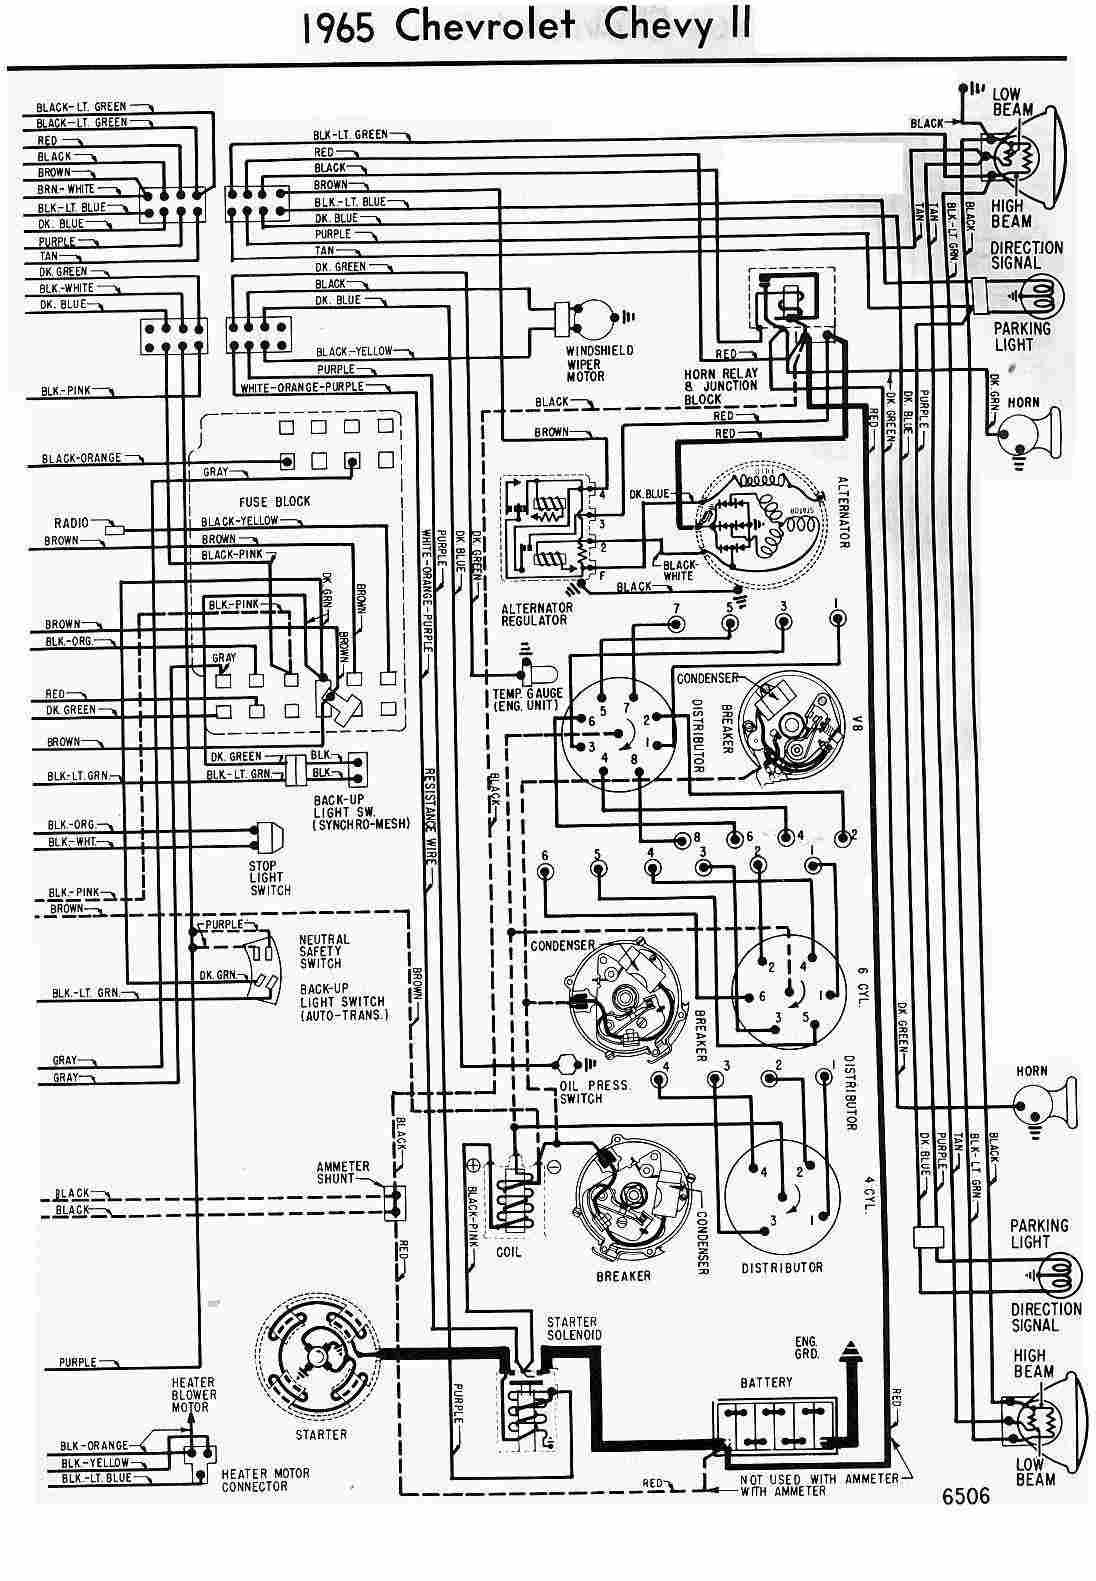 1972 Chevy Wiring Diagram Free Picture Schematic Modern Design Of 72 C10 Engine 1970 Camaro As Well Diagrams Scematic Rh 36 Jessicadonath De Ignition Temp Sensor Color